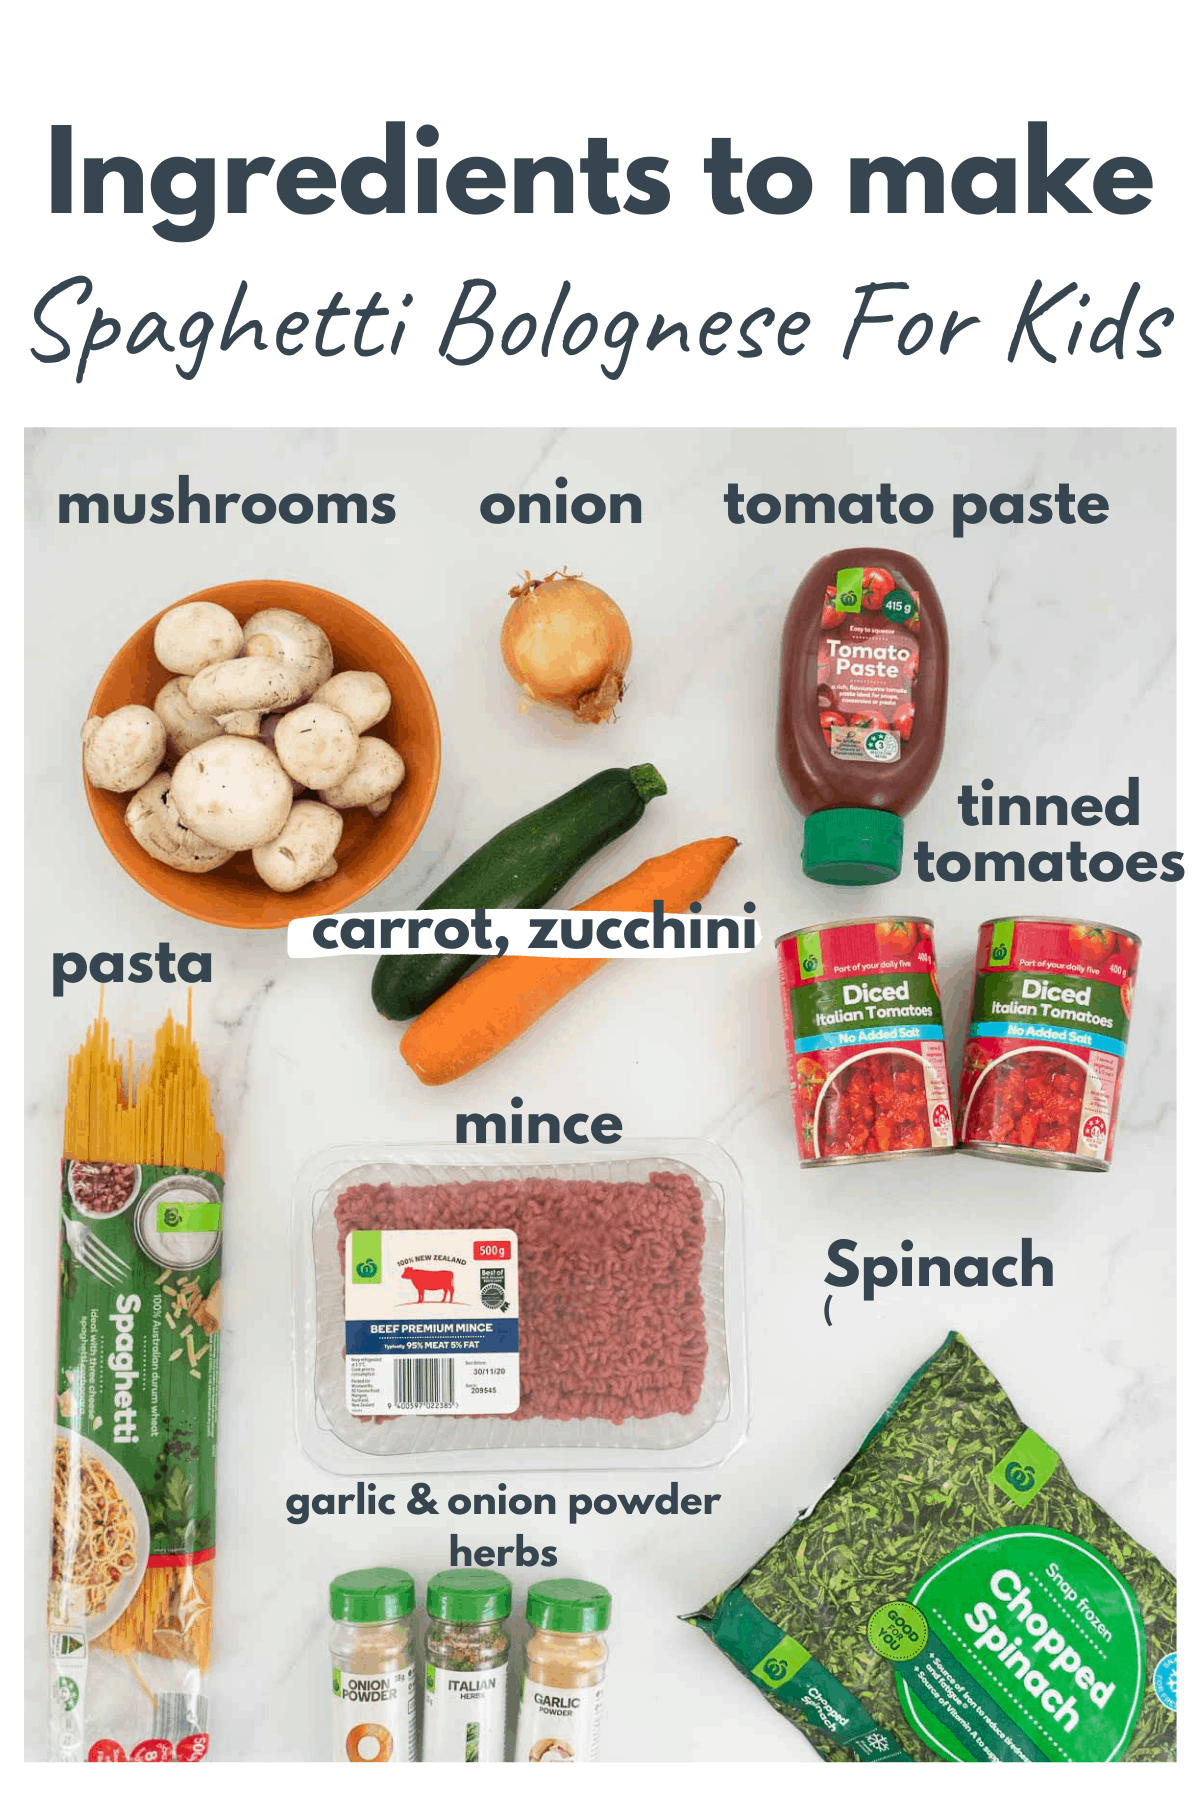 Ingredients to make spaghetti bolognese for kids with text overlay.